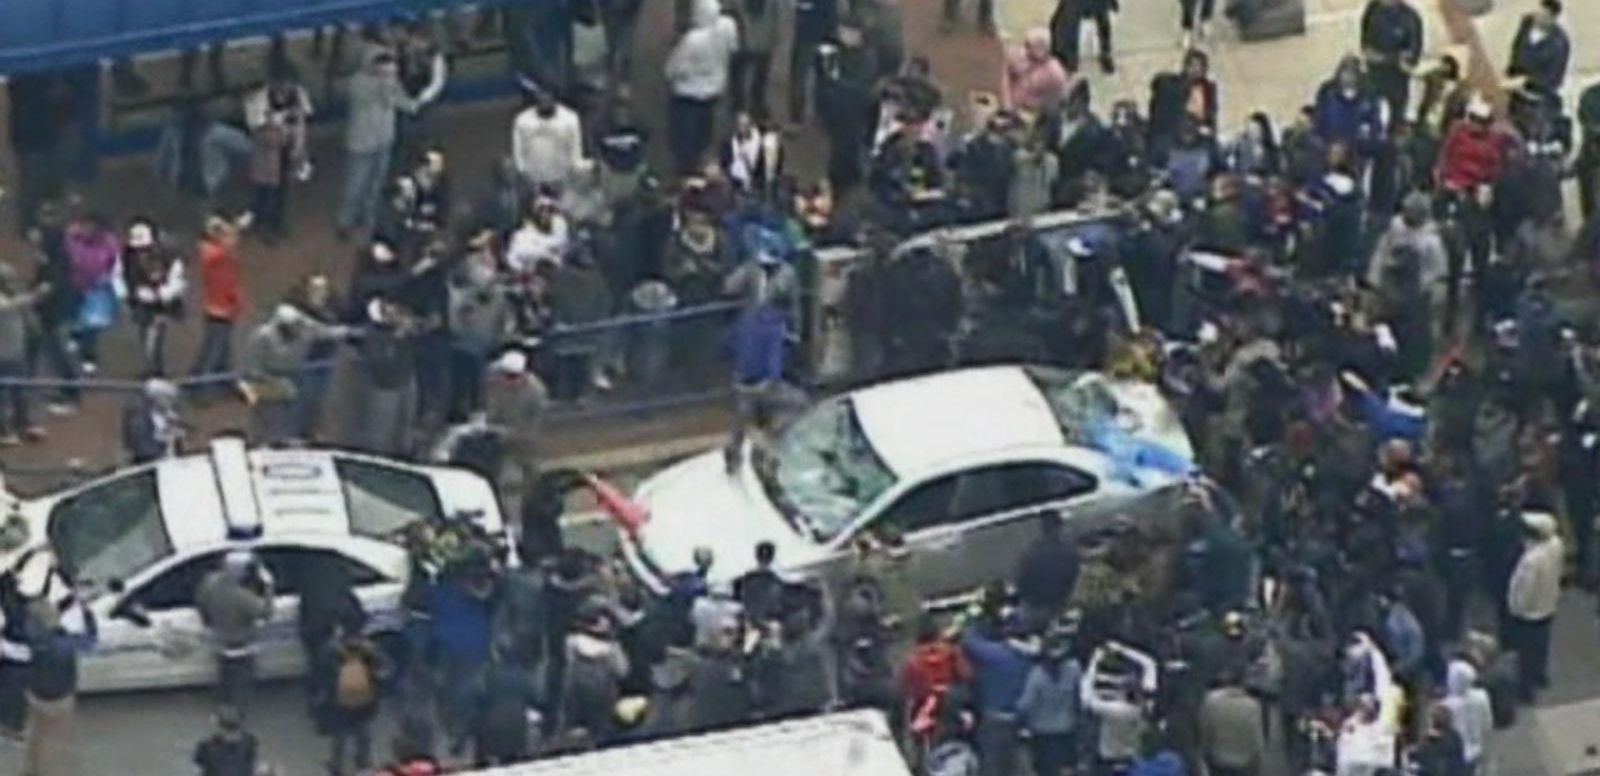 VIDEO: Freddie Grey's Family Calls for Calm After Protests Turn Violent